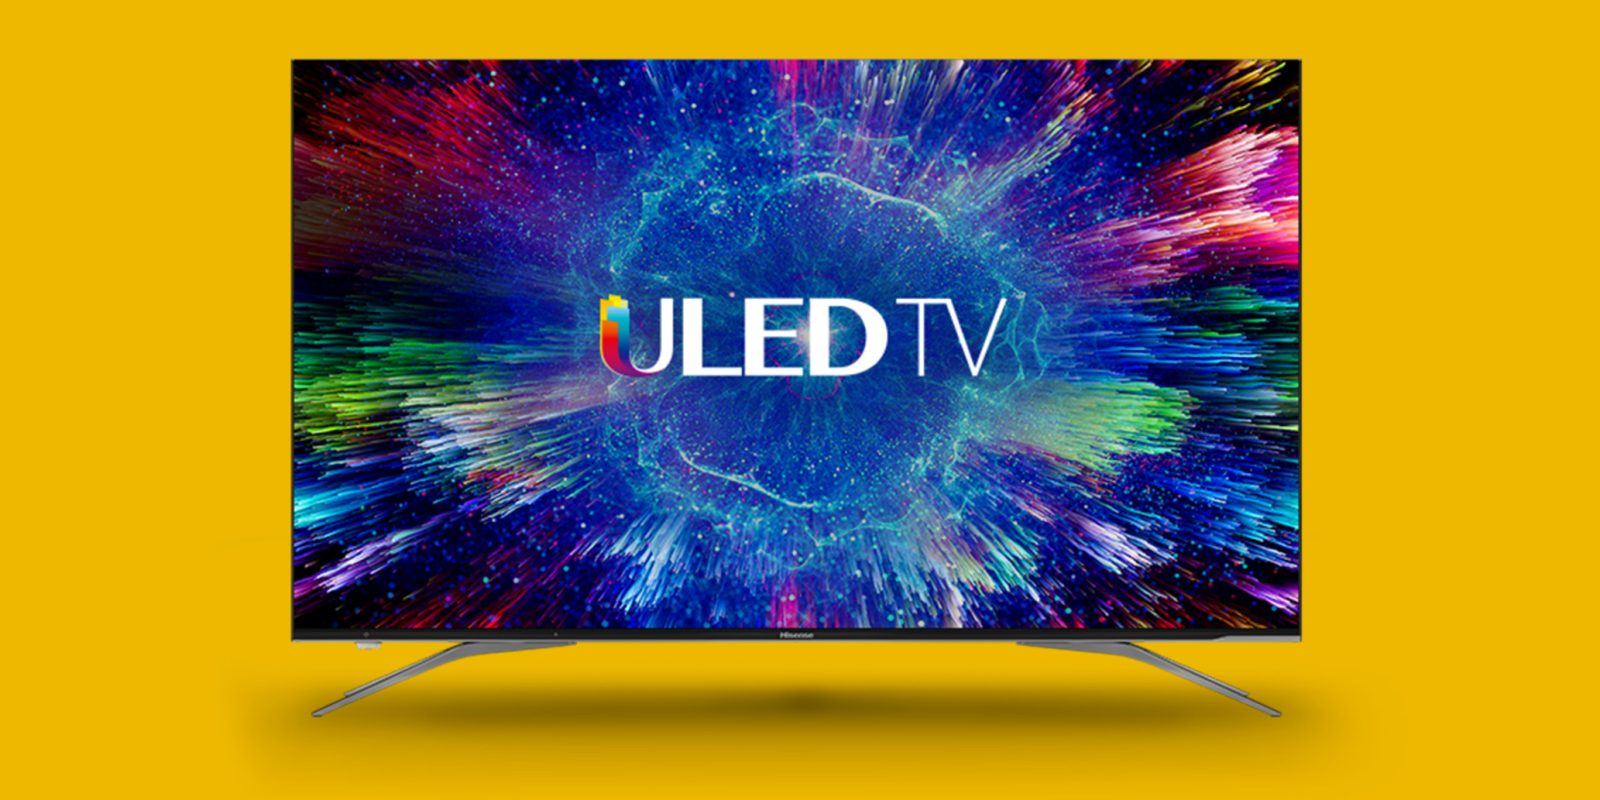 Hisense Announces New Uled Tvs With Roku And Android Tv 9to5toys